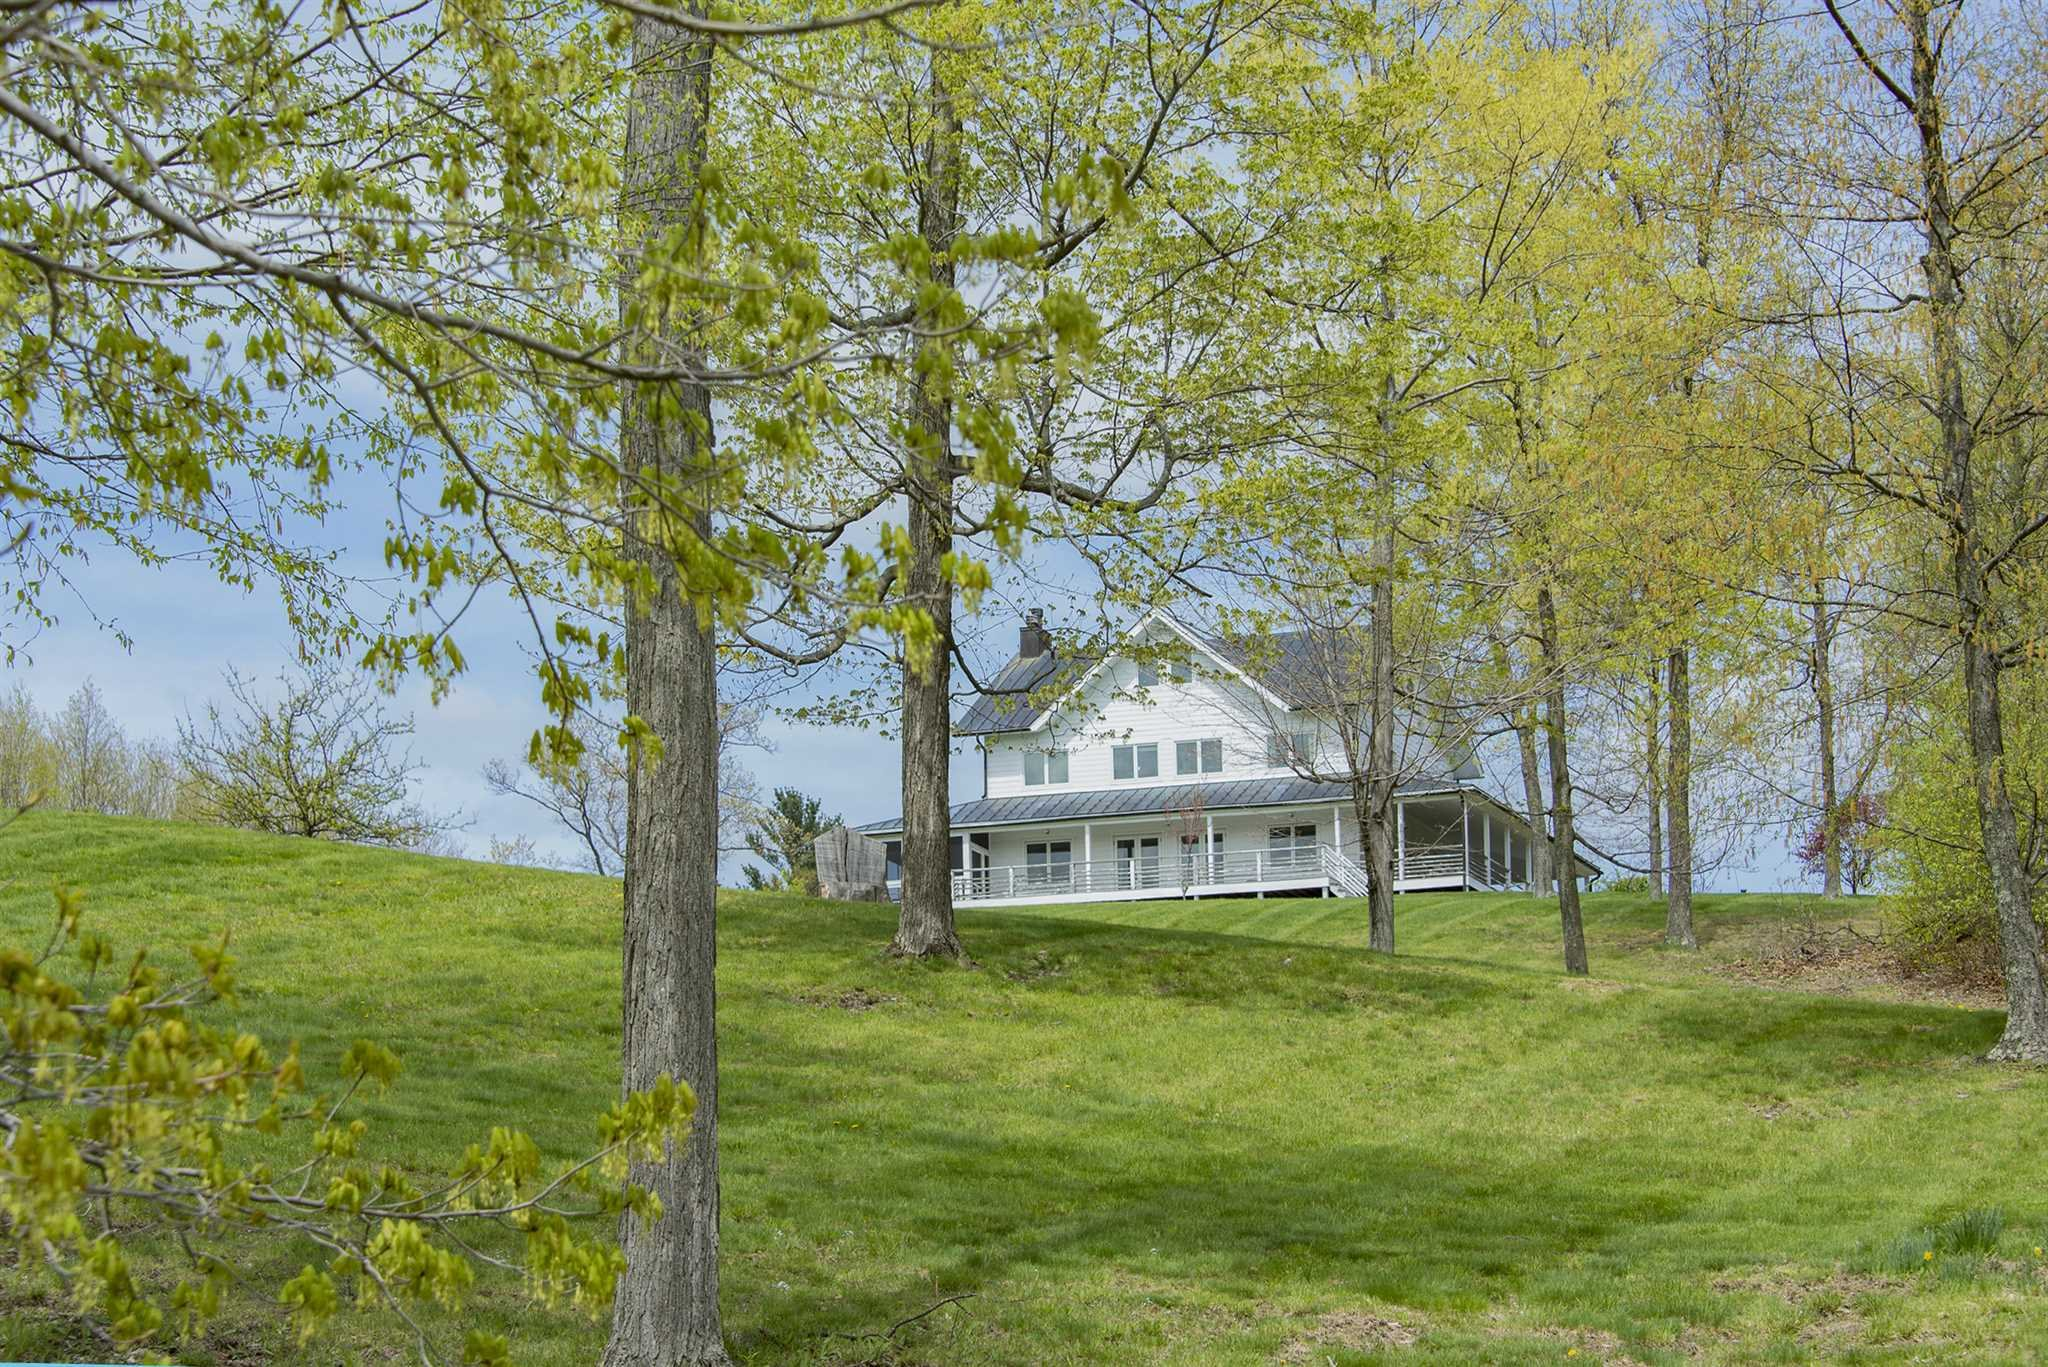 663 WOLFF HILL ROAD 663 WOLFF HILL ROAD Hillsdale, New York 12529 United States